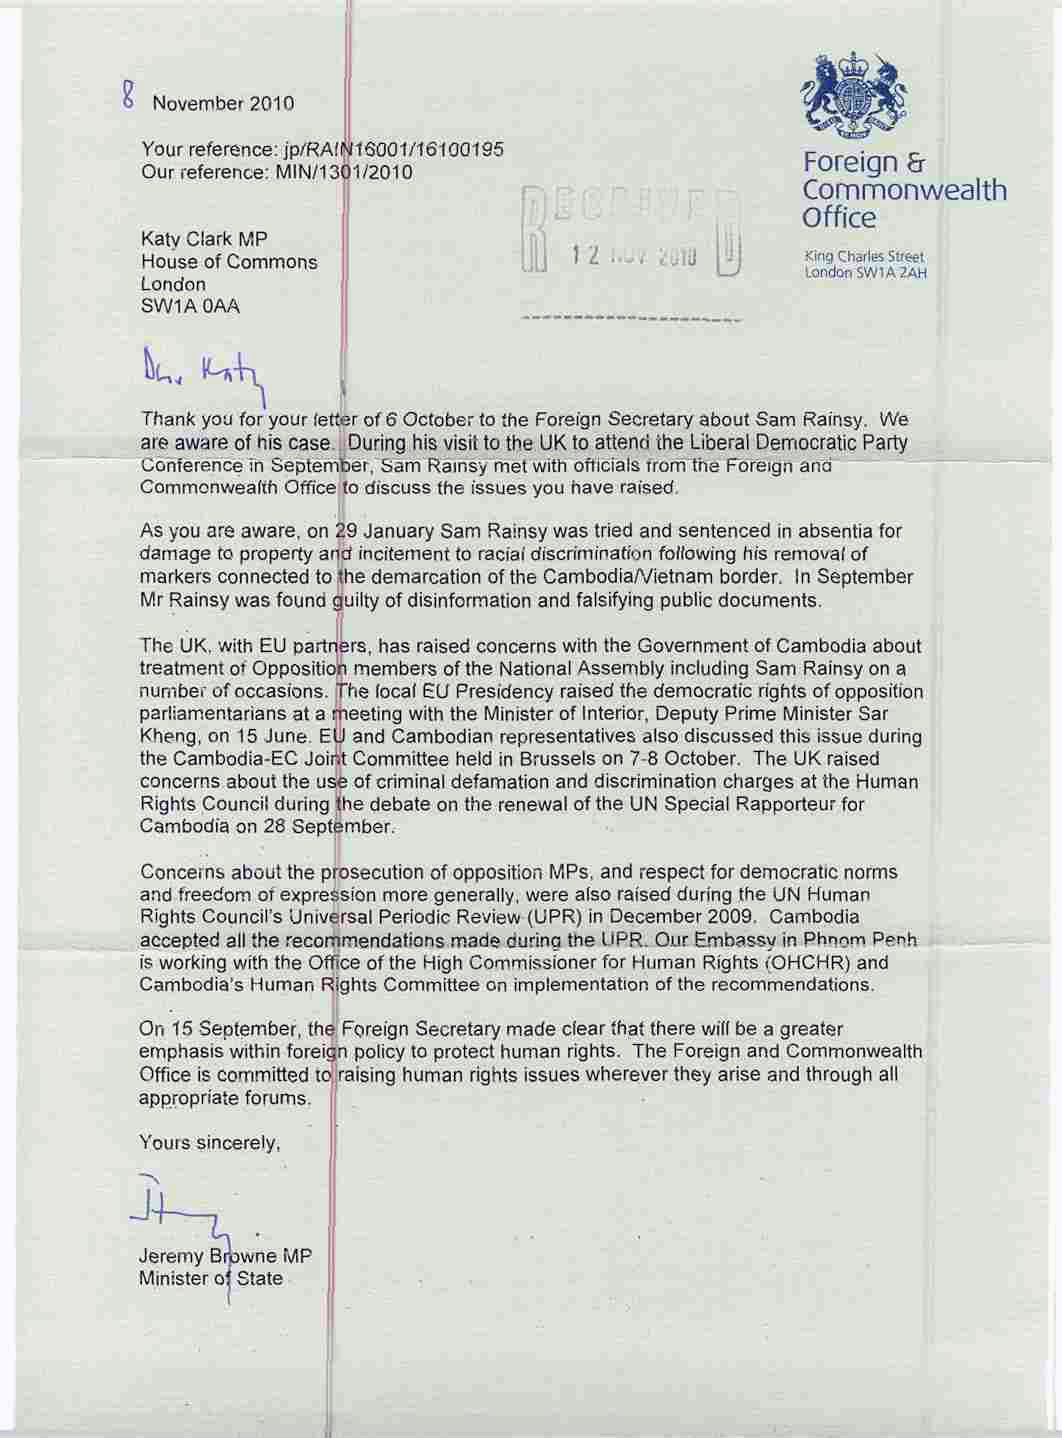 Ki media uk foreign and commonwealth office minister 39 s letter regarding sam rainsy - British foreign commonwealth office ...